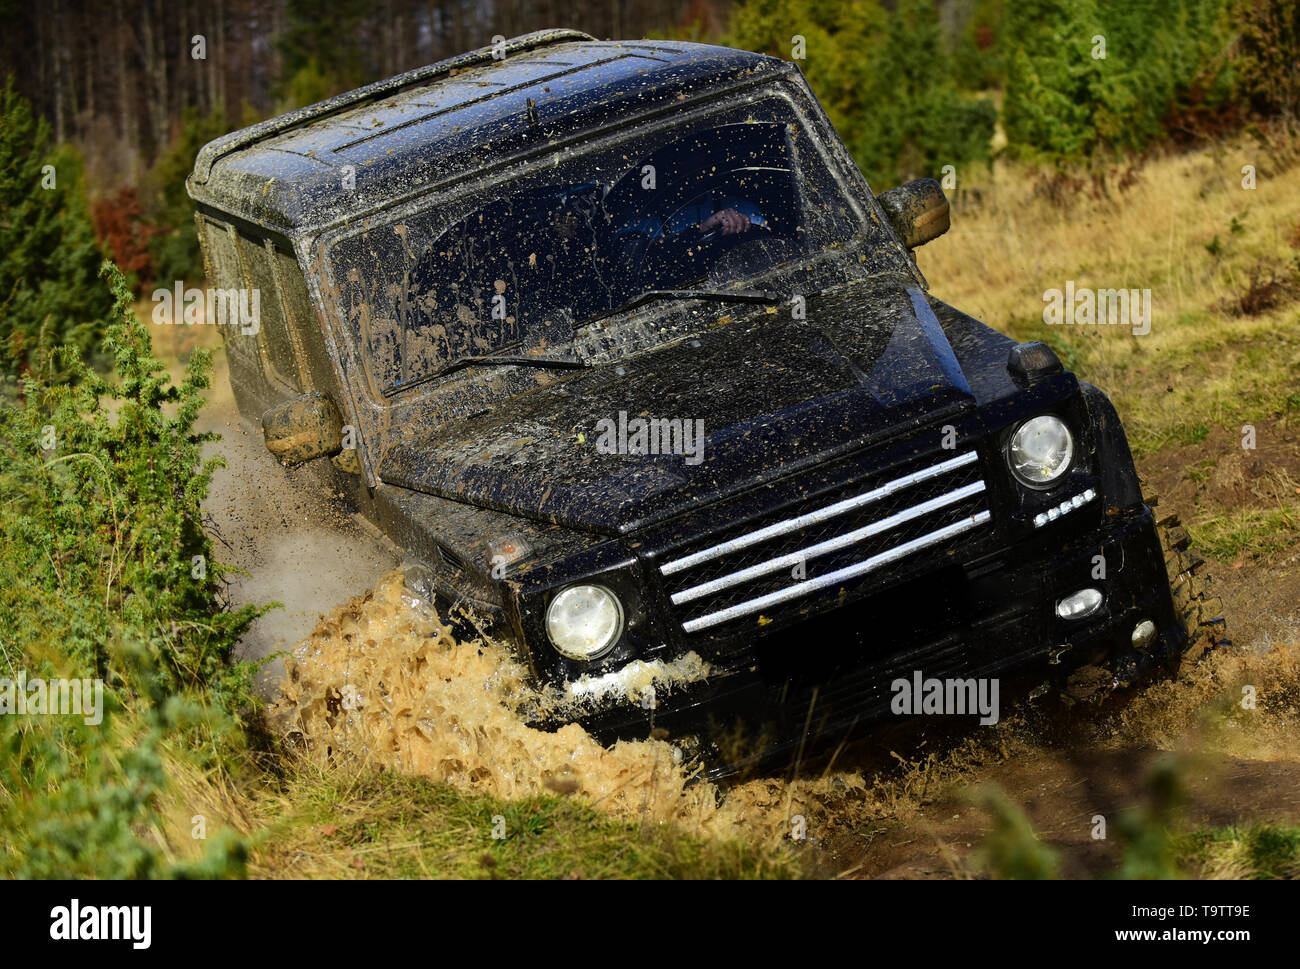 Competition, energy and motorsport concept. Off road vehicle or SUV overcomes obstacles. Auto racing on fall nature background. Car racing in autumn - Stock Image